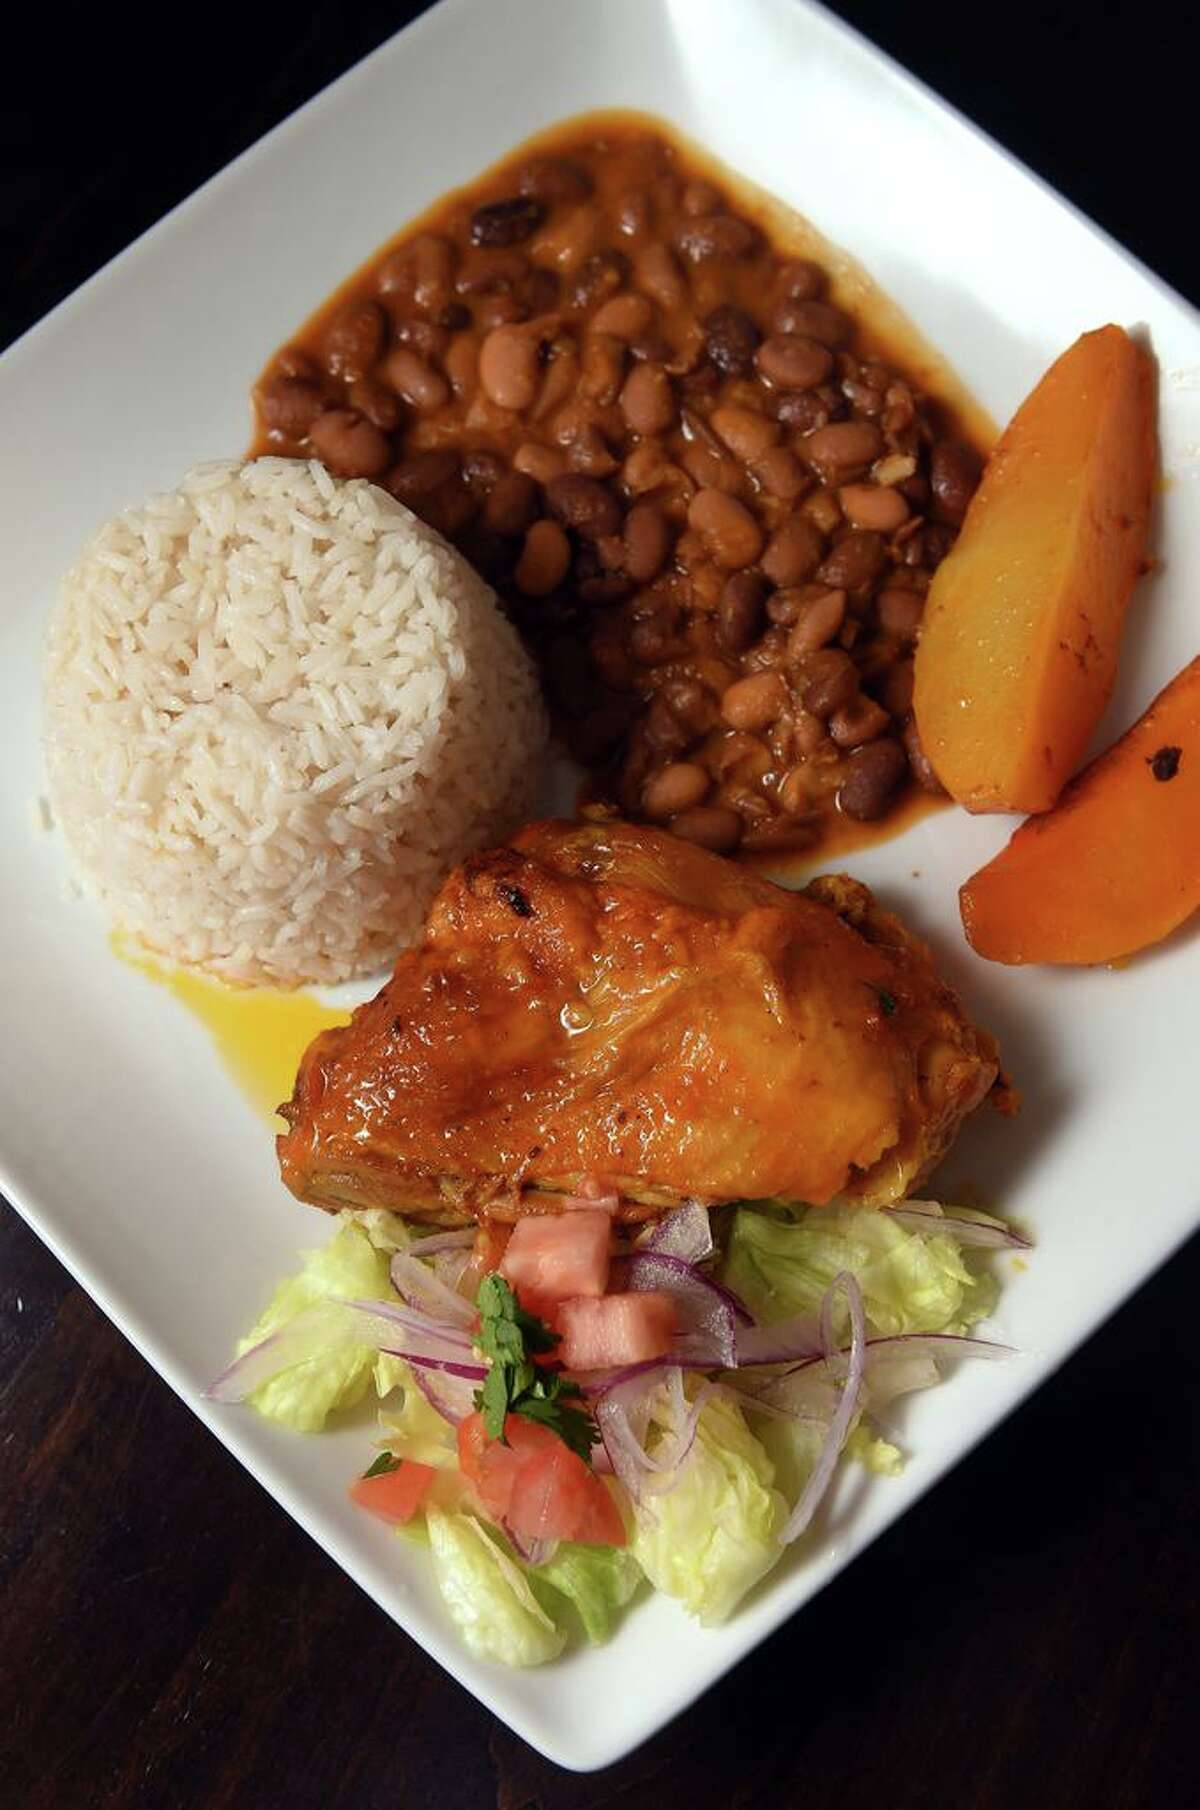 Roasted chicken with rice, beans, potatoes and salad.